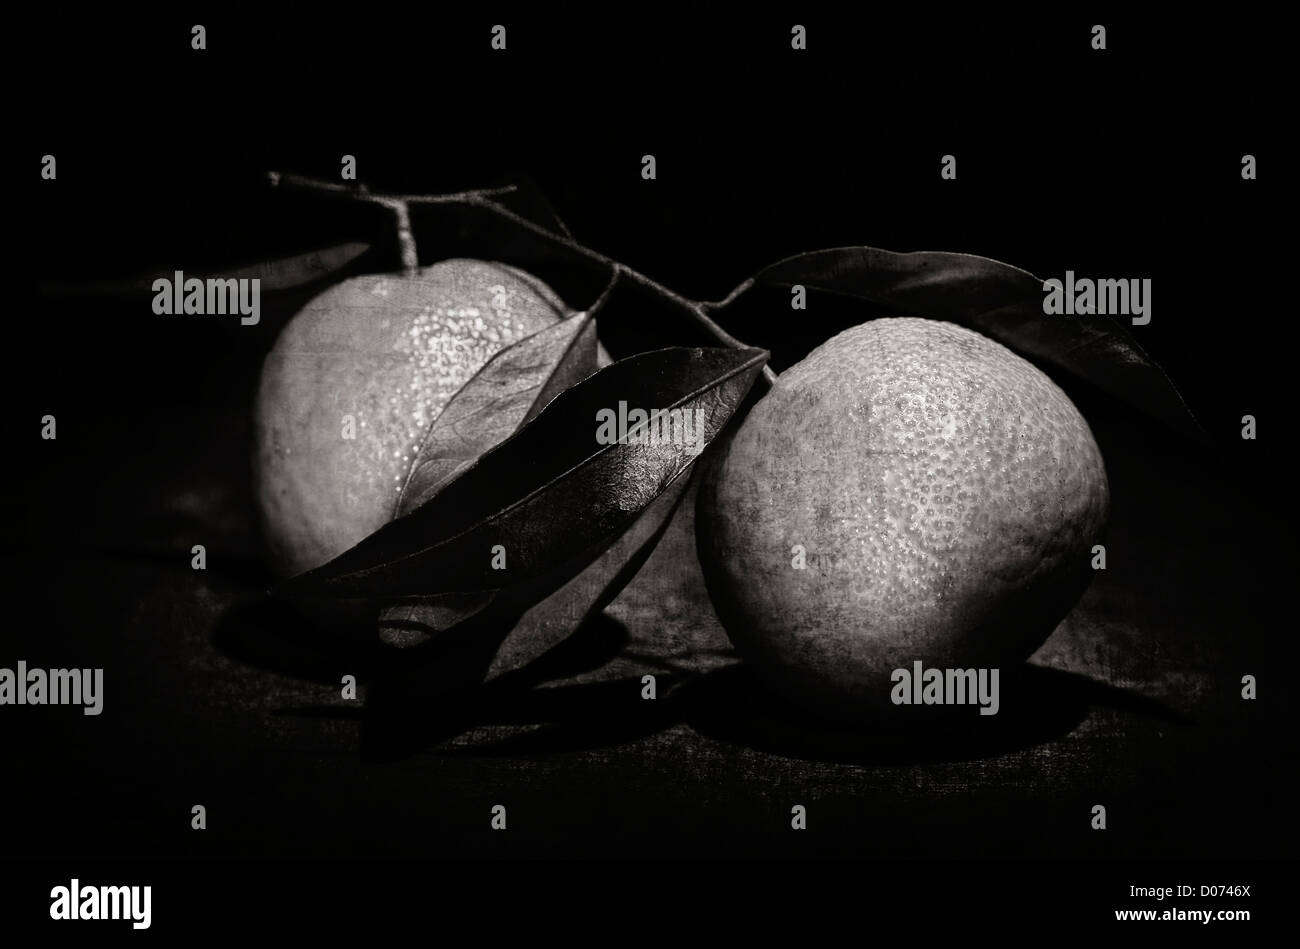 grunge image of mandarins on wood table sepia tones - Stock Image